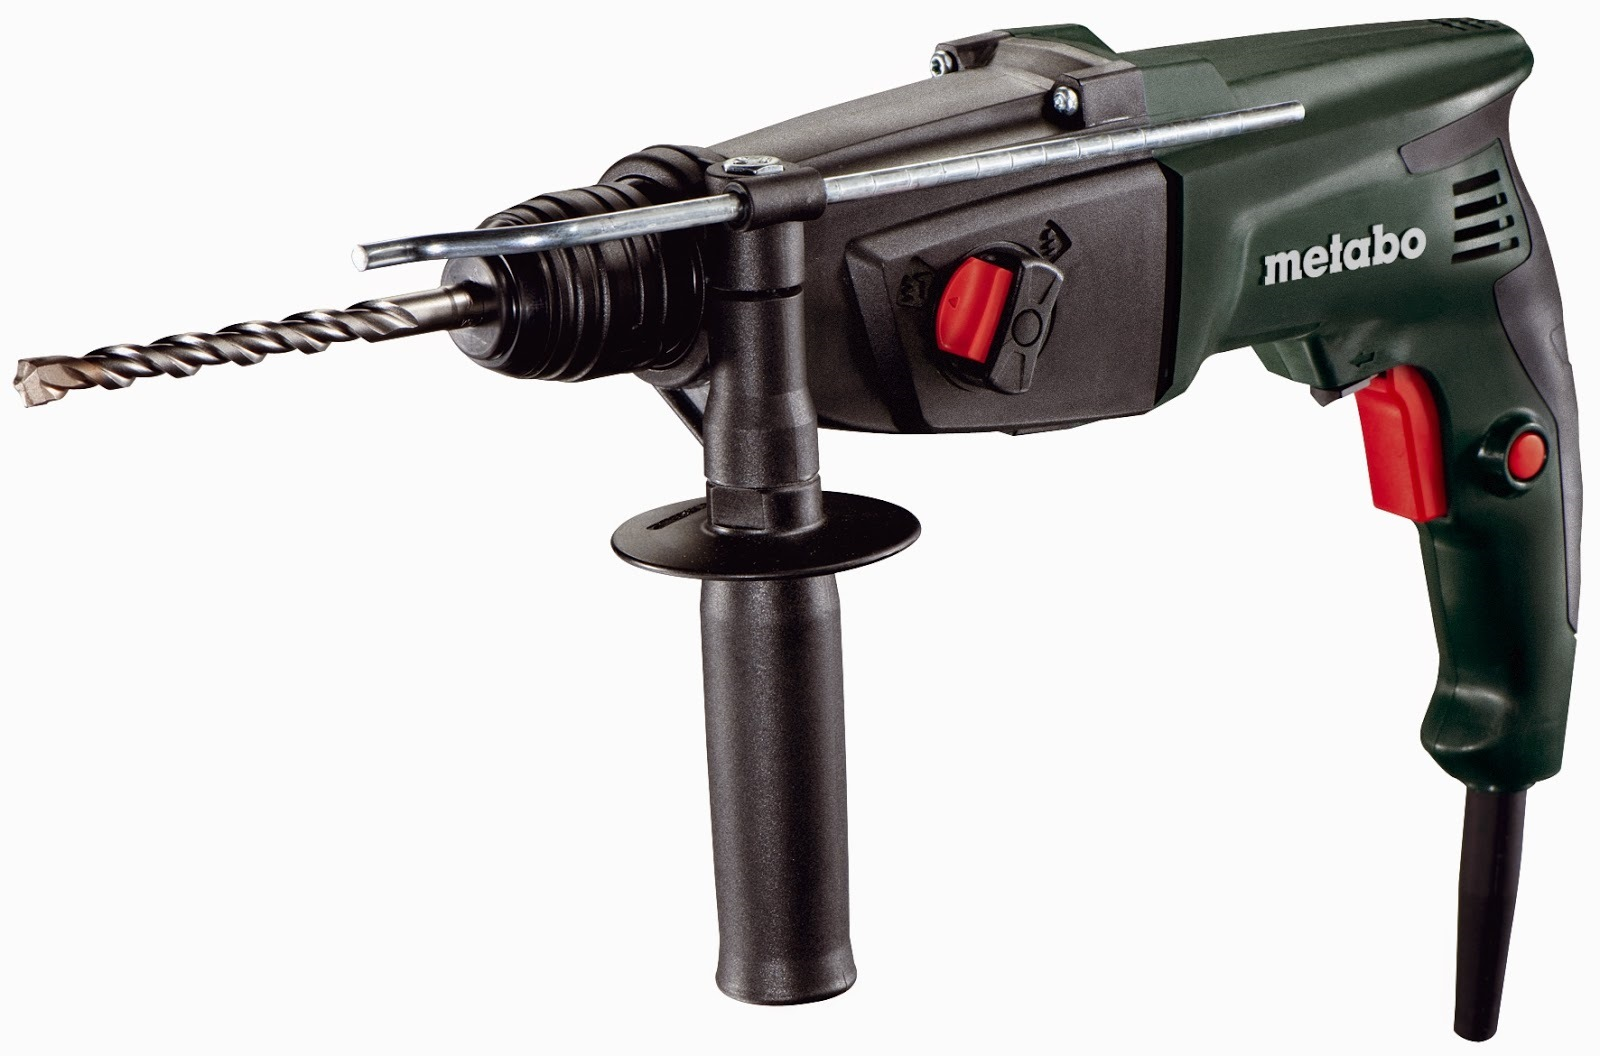 Metabo 24mm Rotary Hammer, 760w, BHE2442